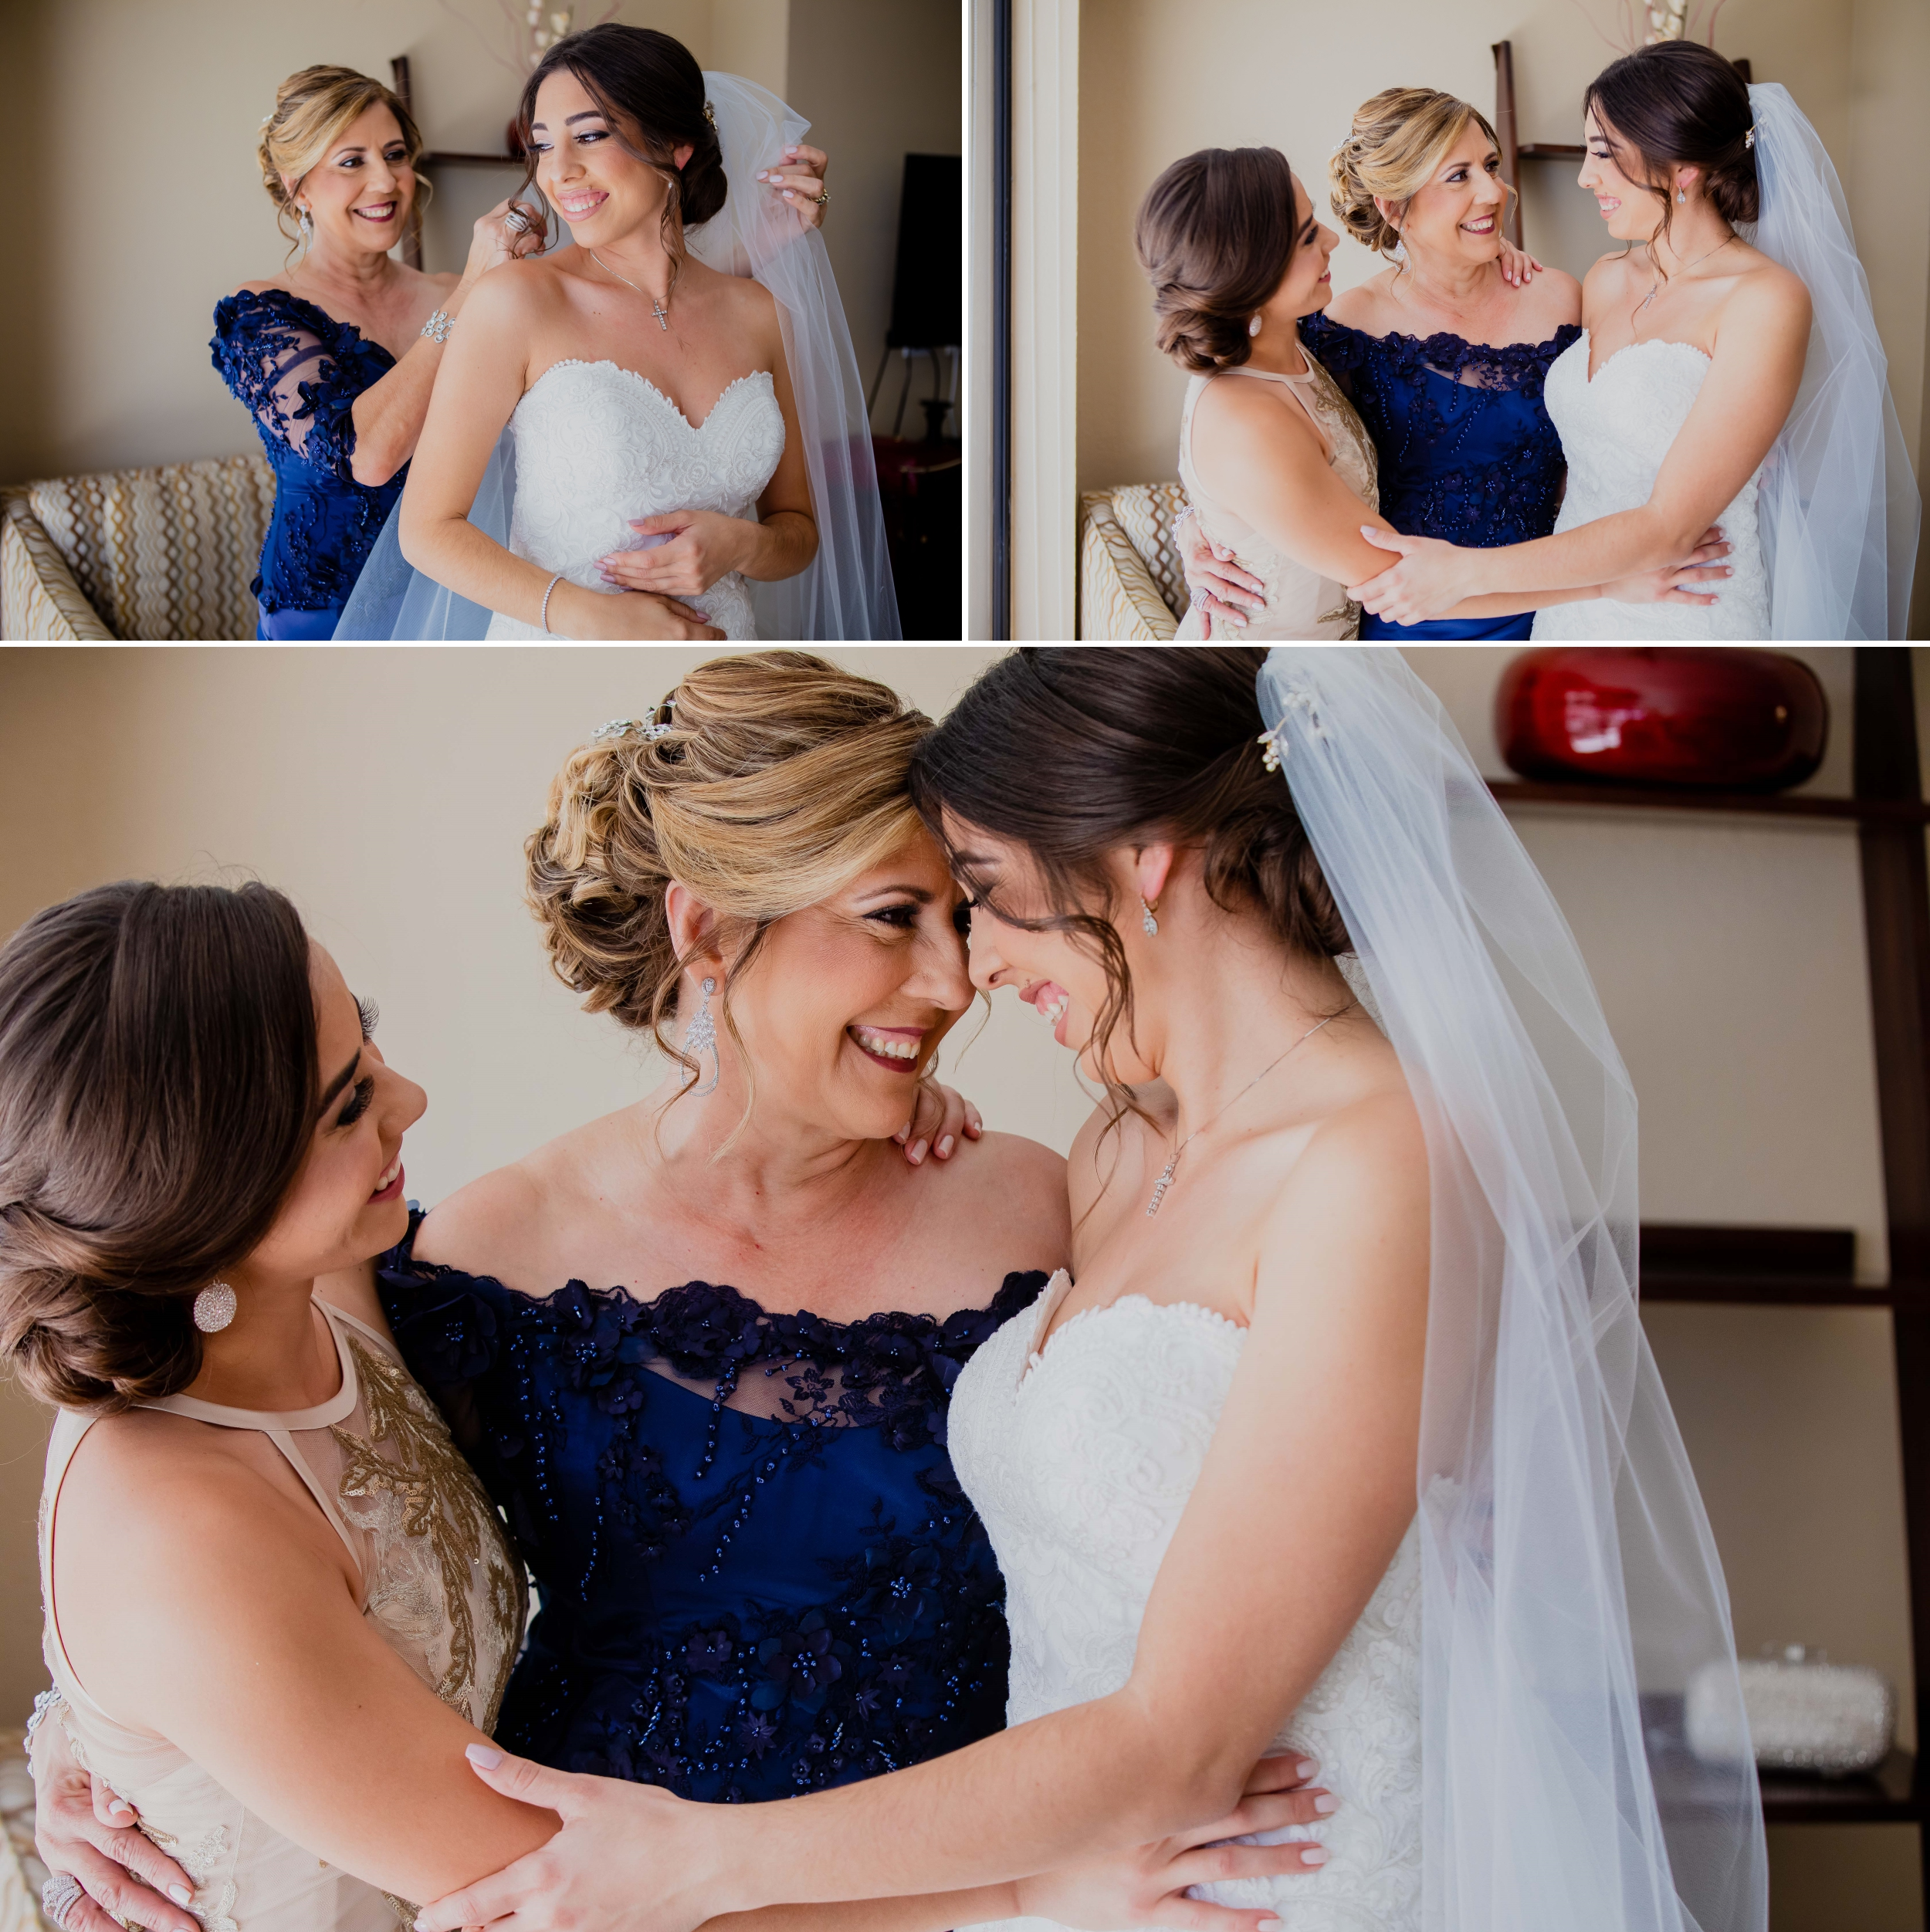 Wedding - St Patrick Church - The Bath Club - Santy Martinez Photography 12.jpg